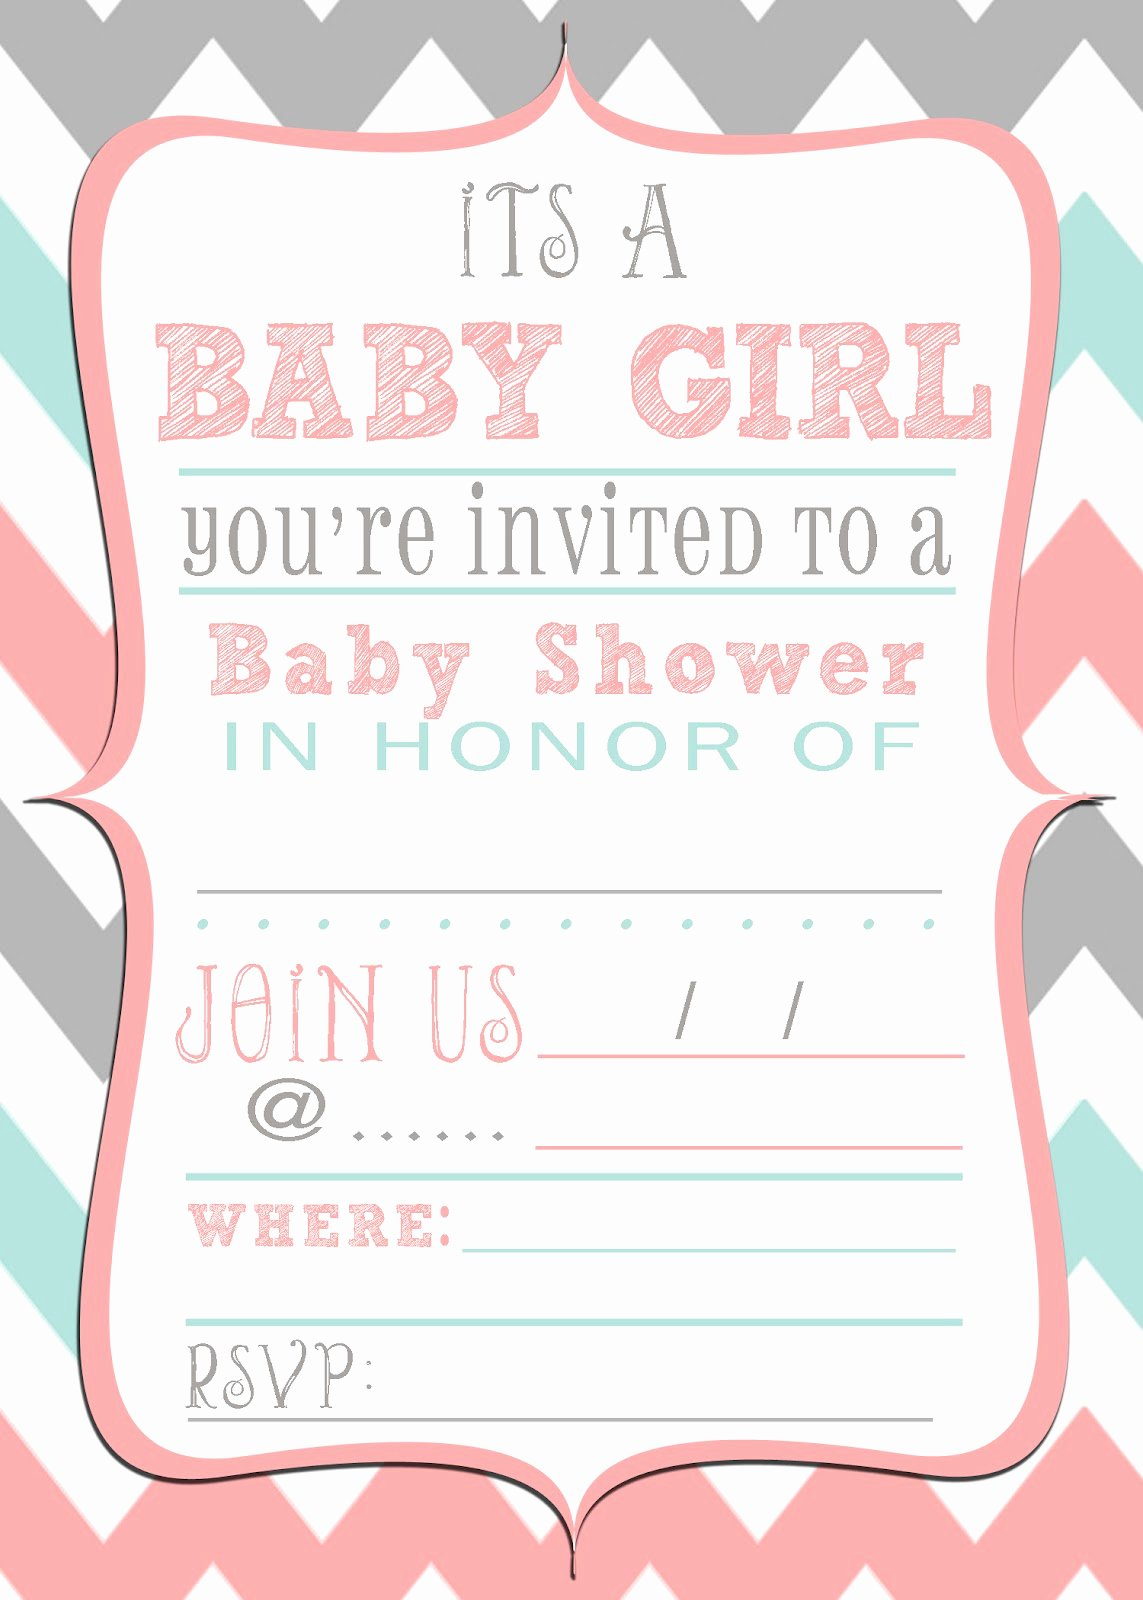 Baby Shower Card Printable Elegant Mrs This and that Baby Shower Banner Free Downloads